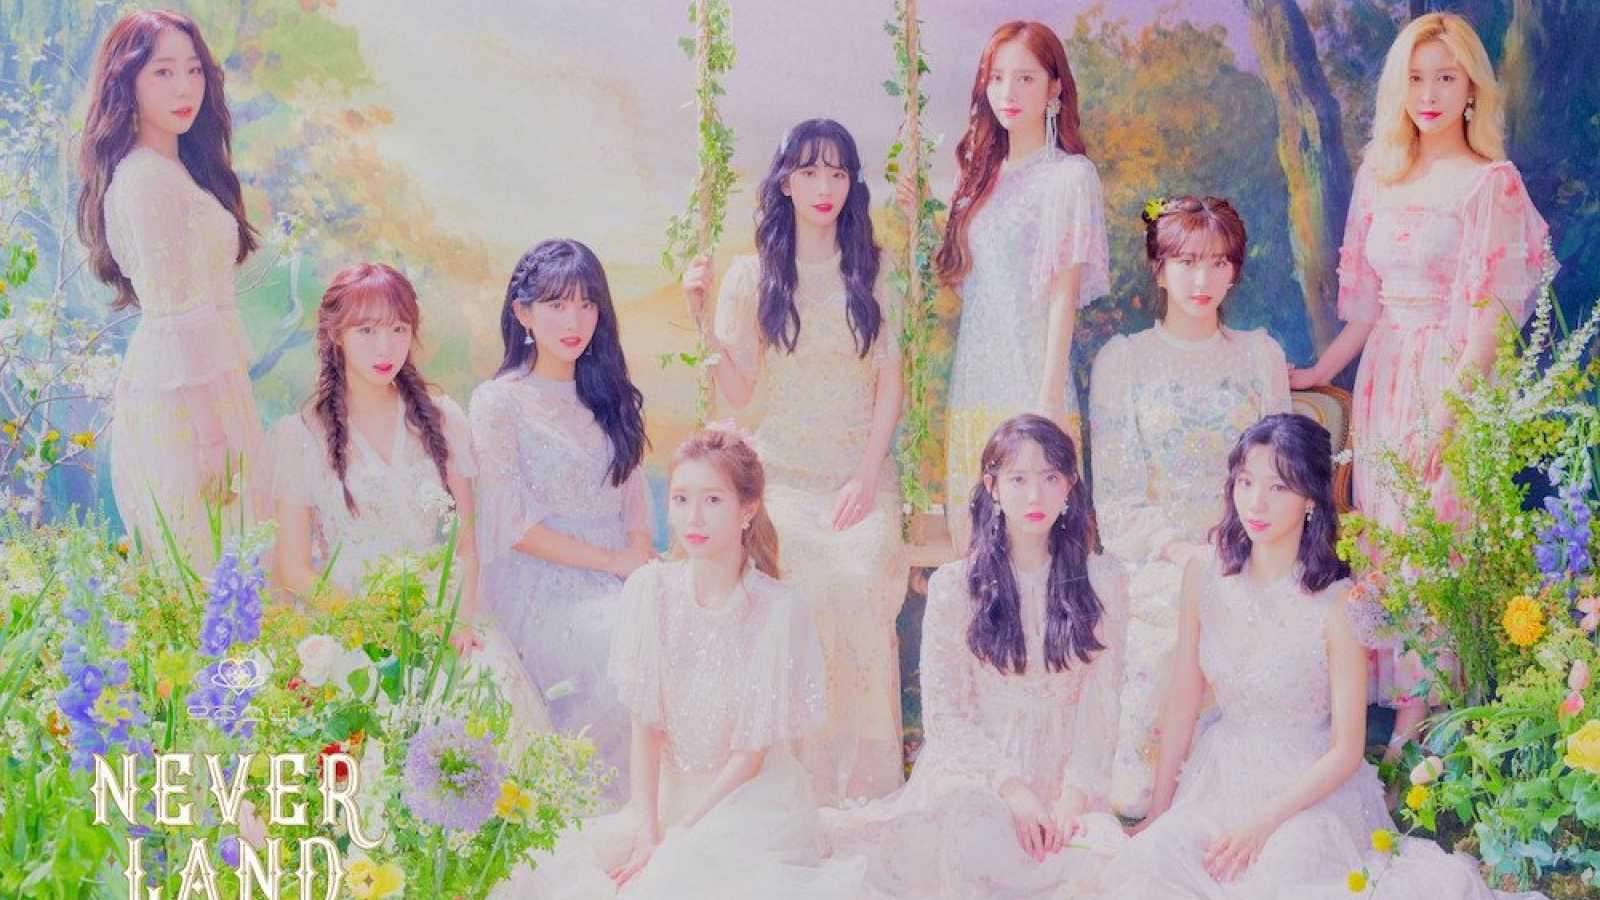 Cosmic Girls © Starship Entertainment & Yuehua Entertainment. All rights reserved